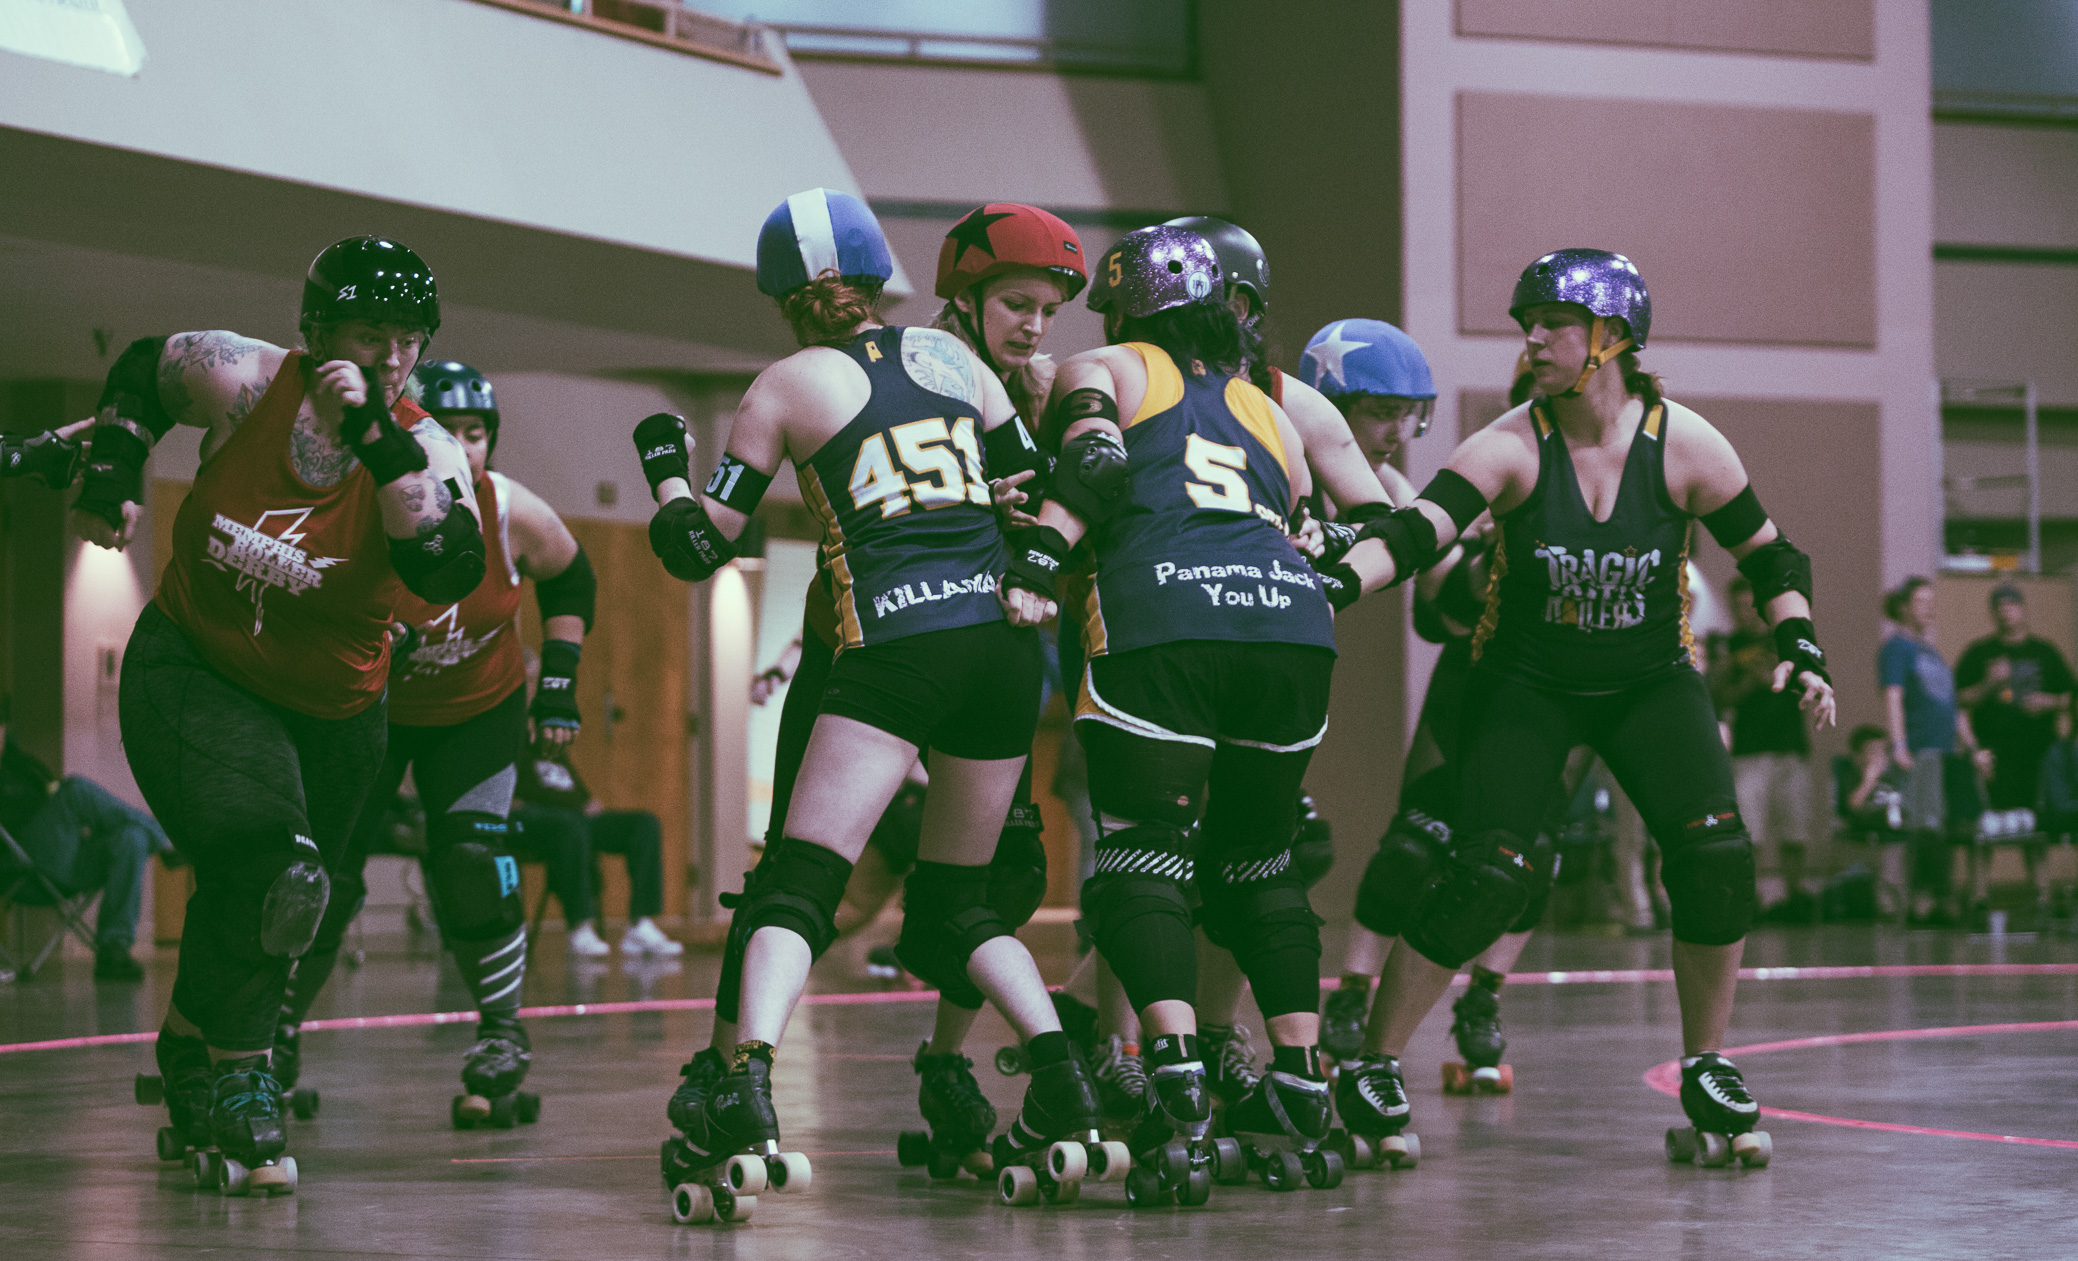 A scene from the roller derby bout between The Tragic City Rollers All-Stars vs. Memphis Roller Derby's Hustlin' Rollers at Zamora Shrine Center in Irondale, Alabama on March 24th, 2018. (Photo by David A. Smith/DSmithScenes)